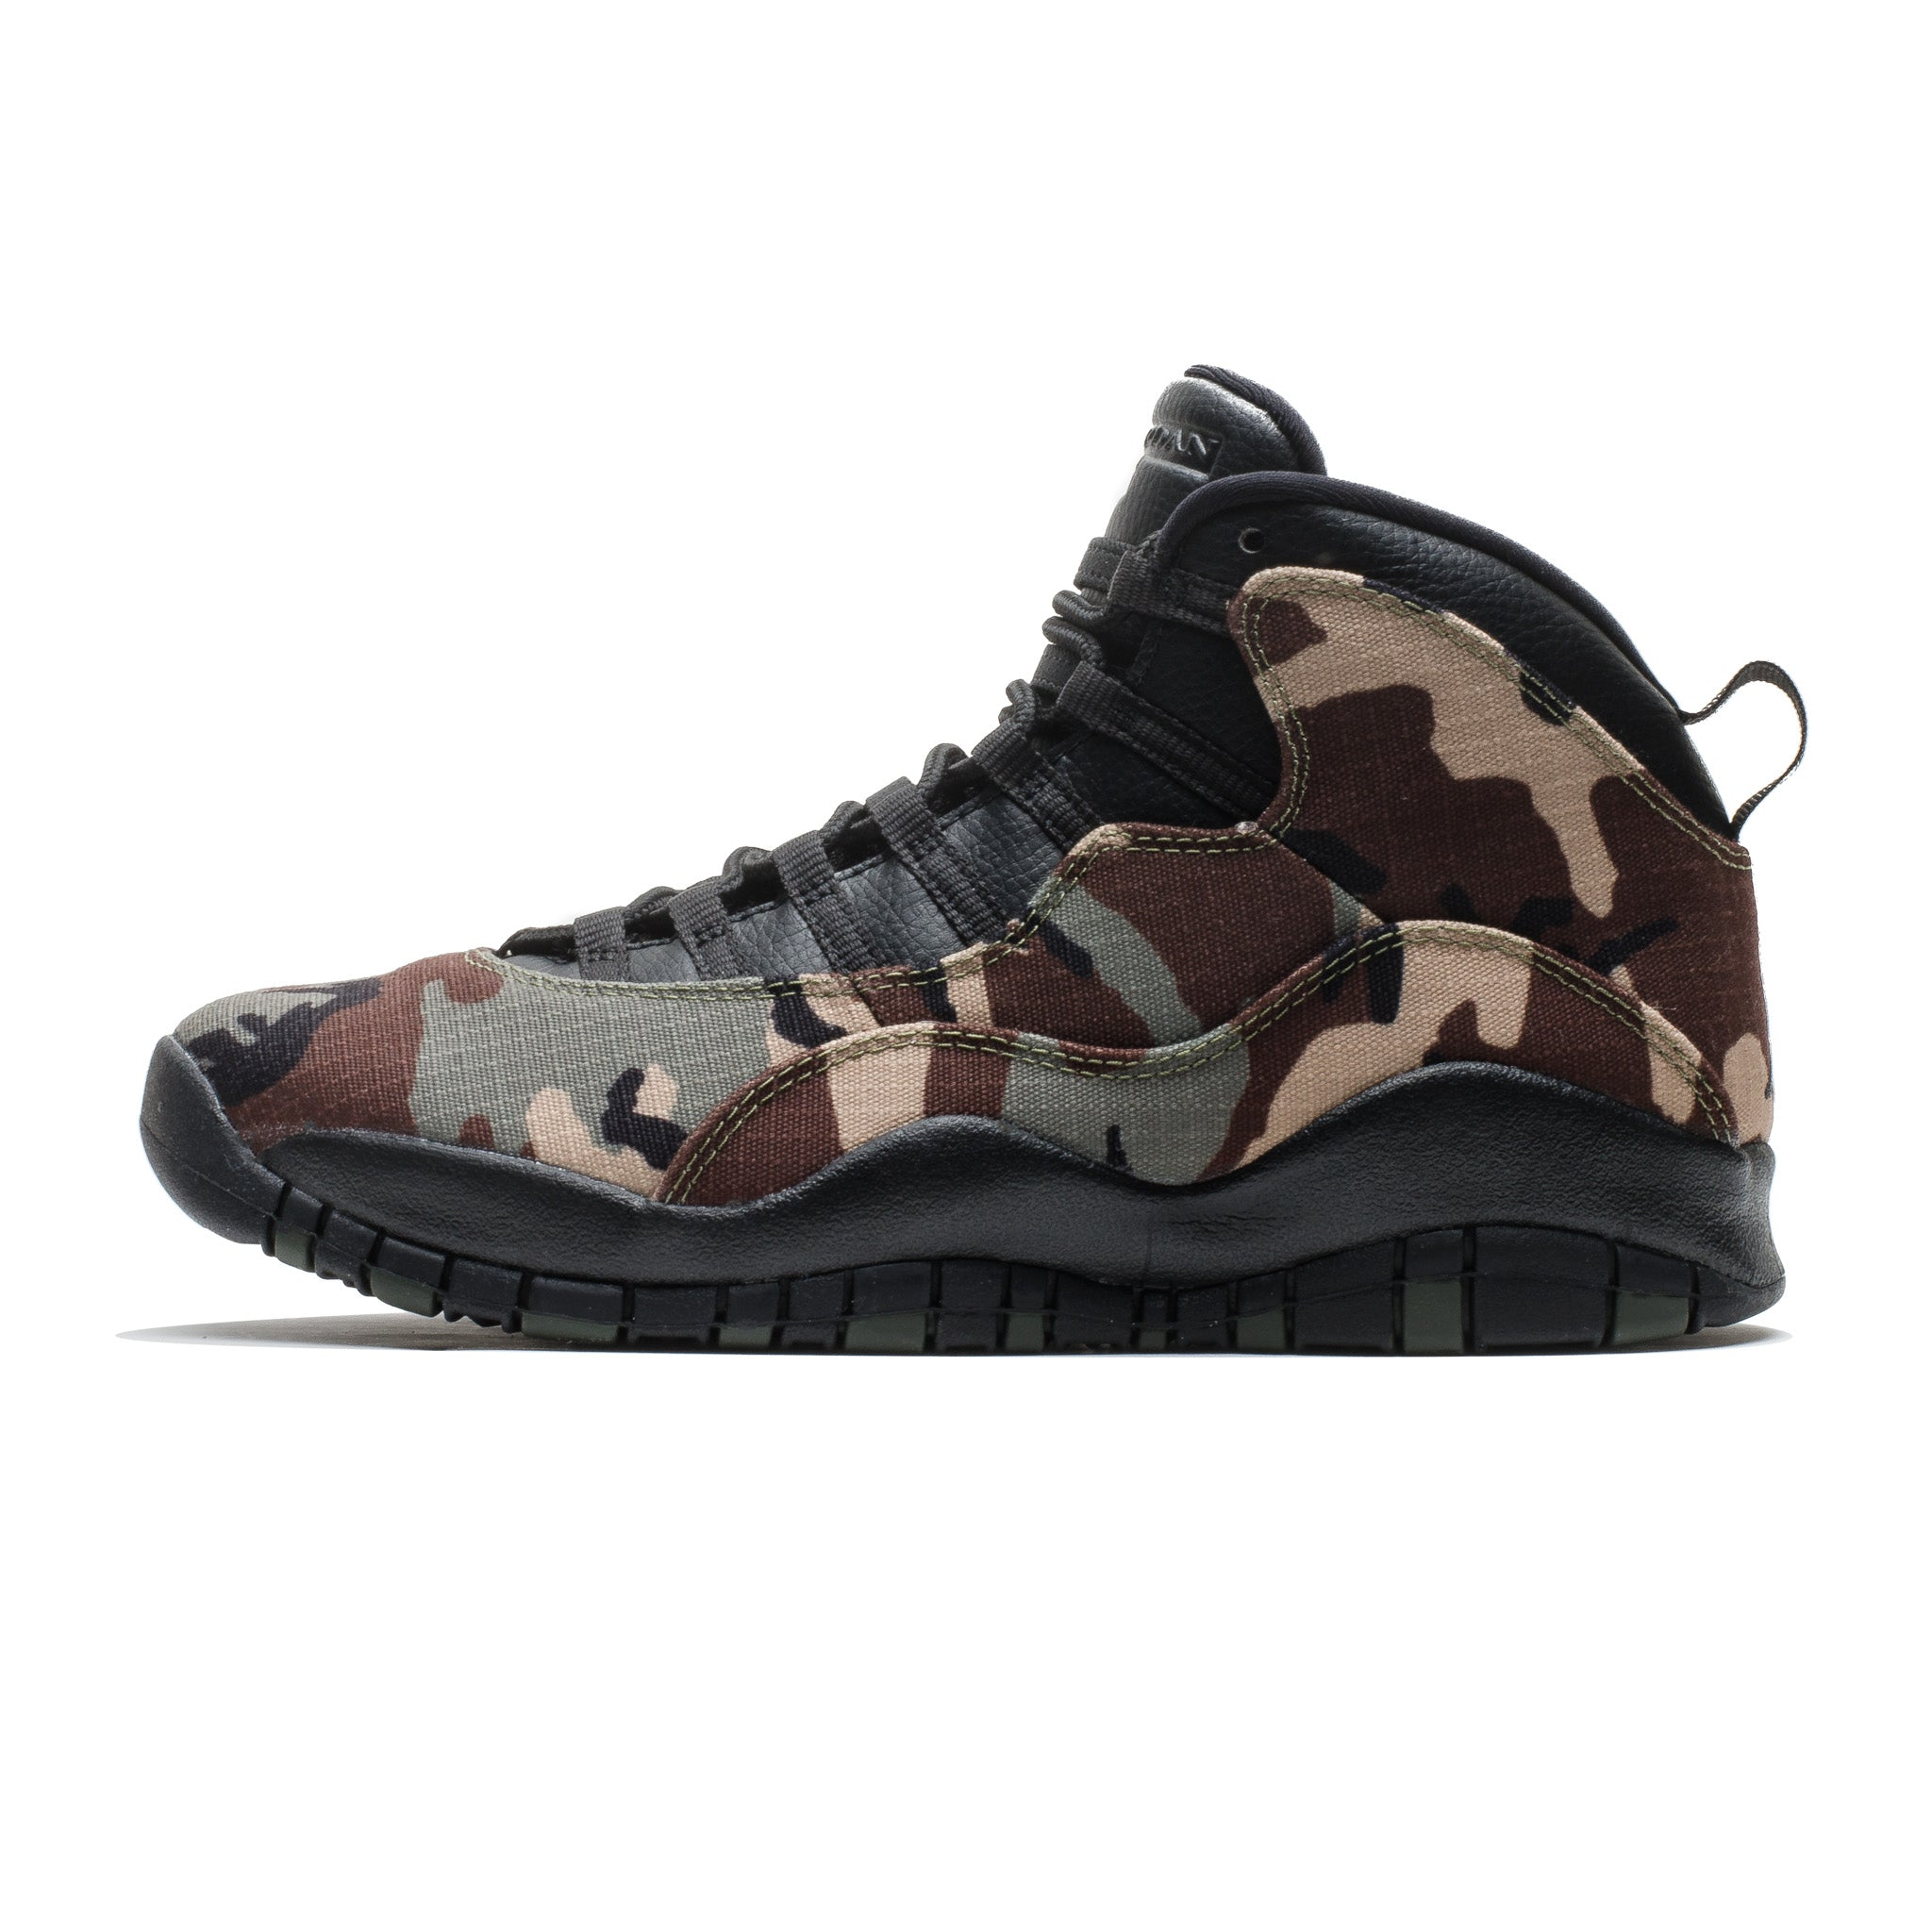 Air Jordan 10 Retro 310805-201 Woodland Camo